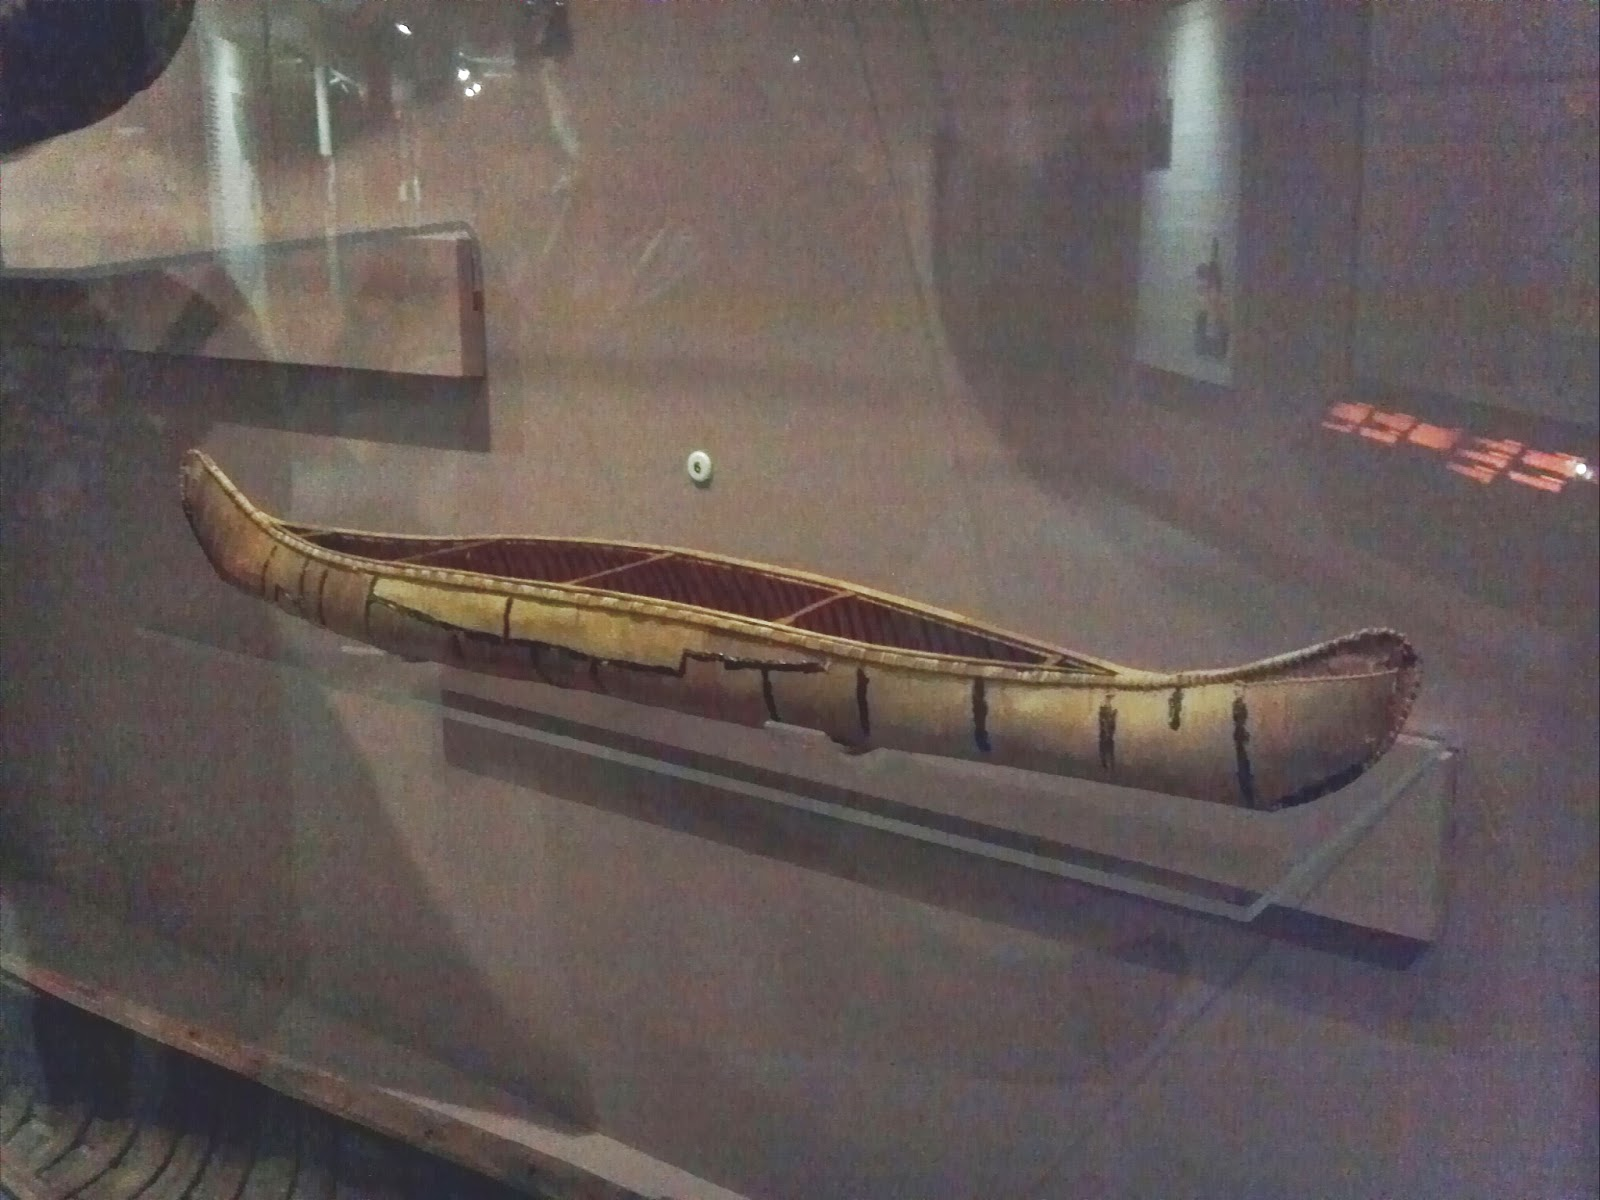 Micmac canoe model